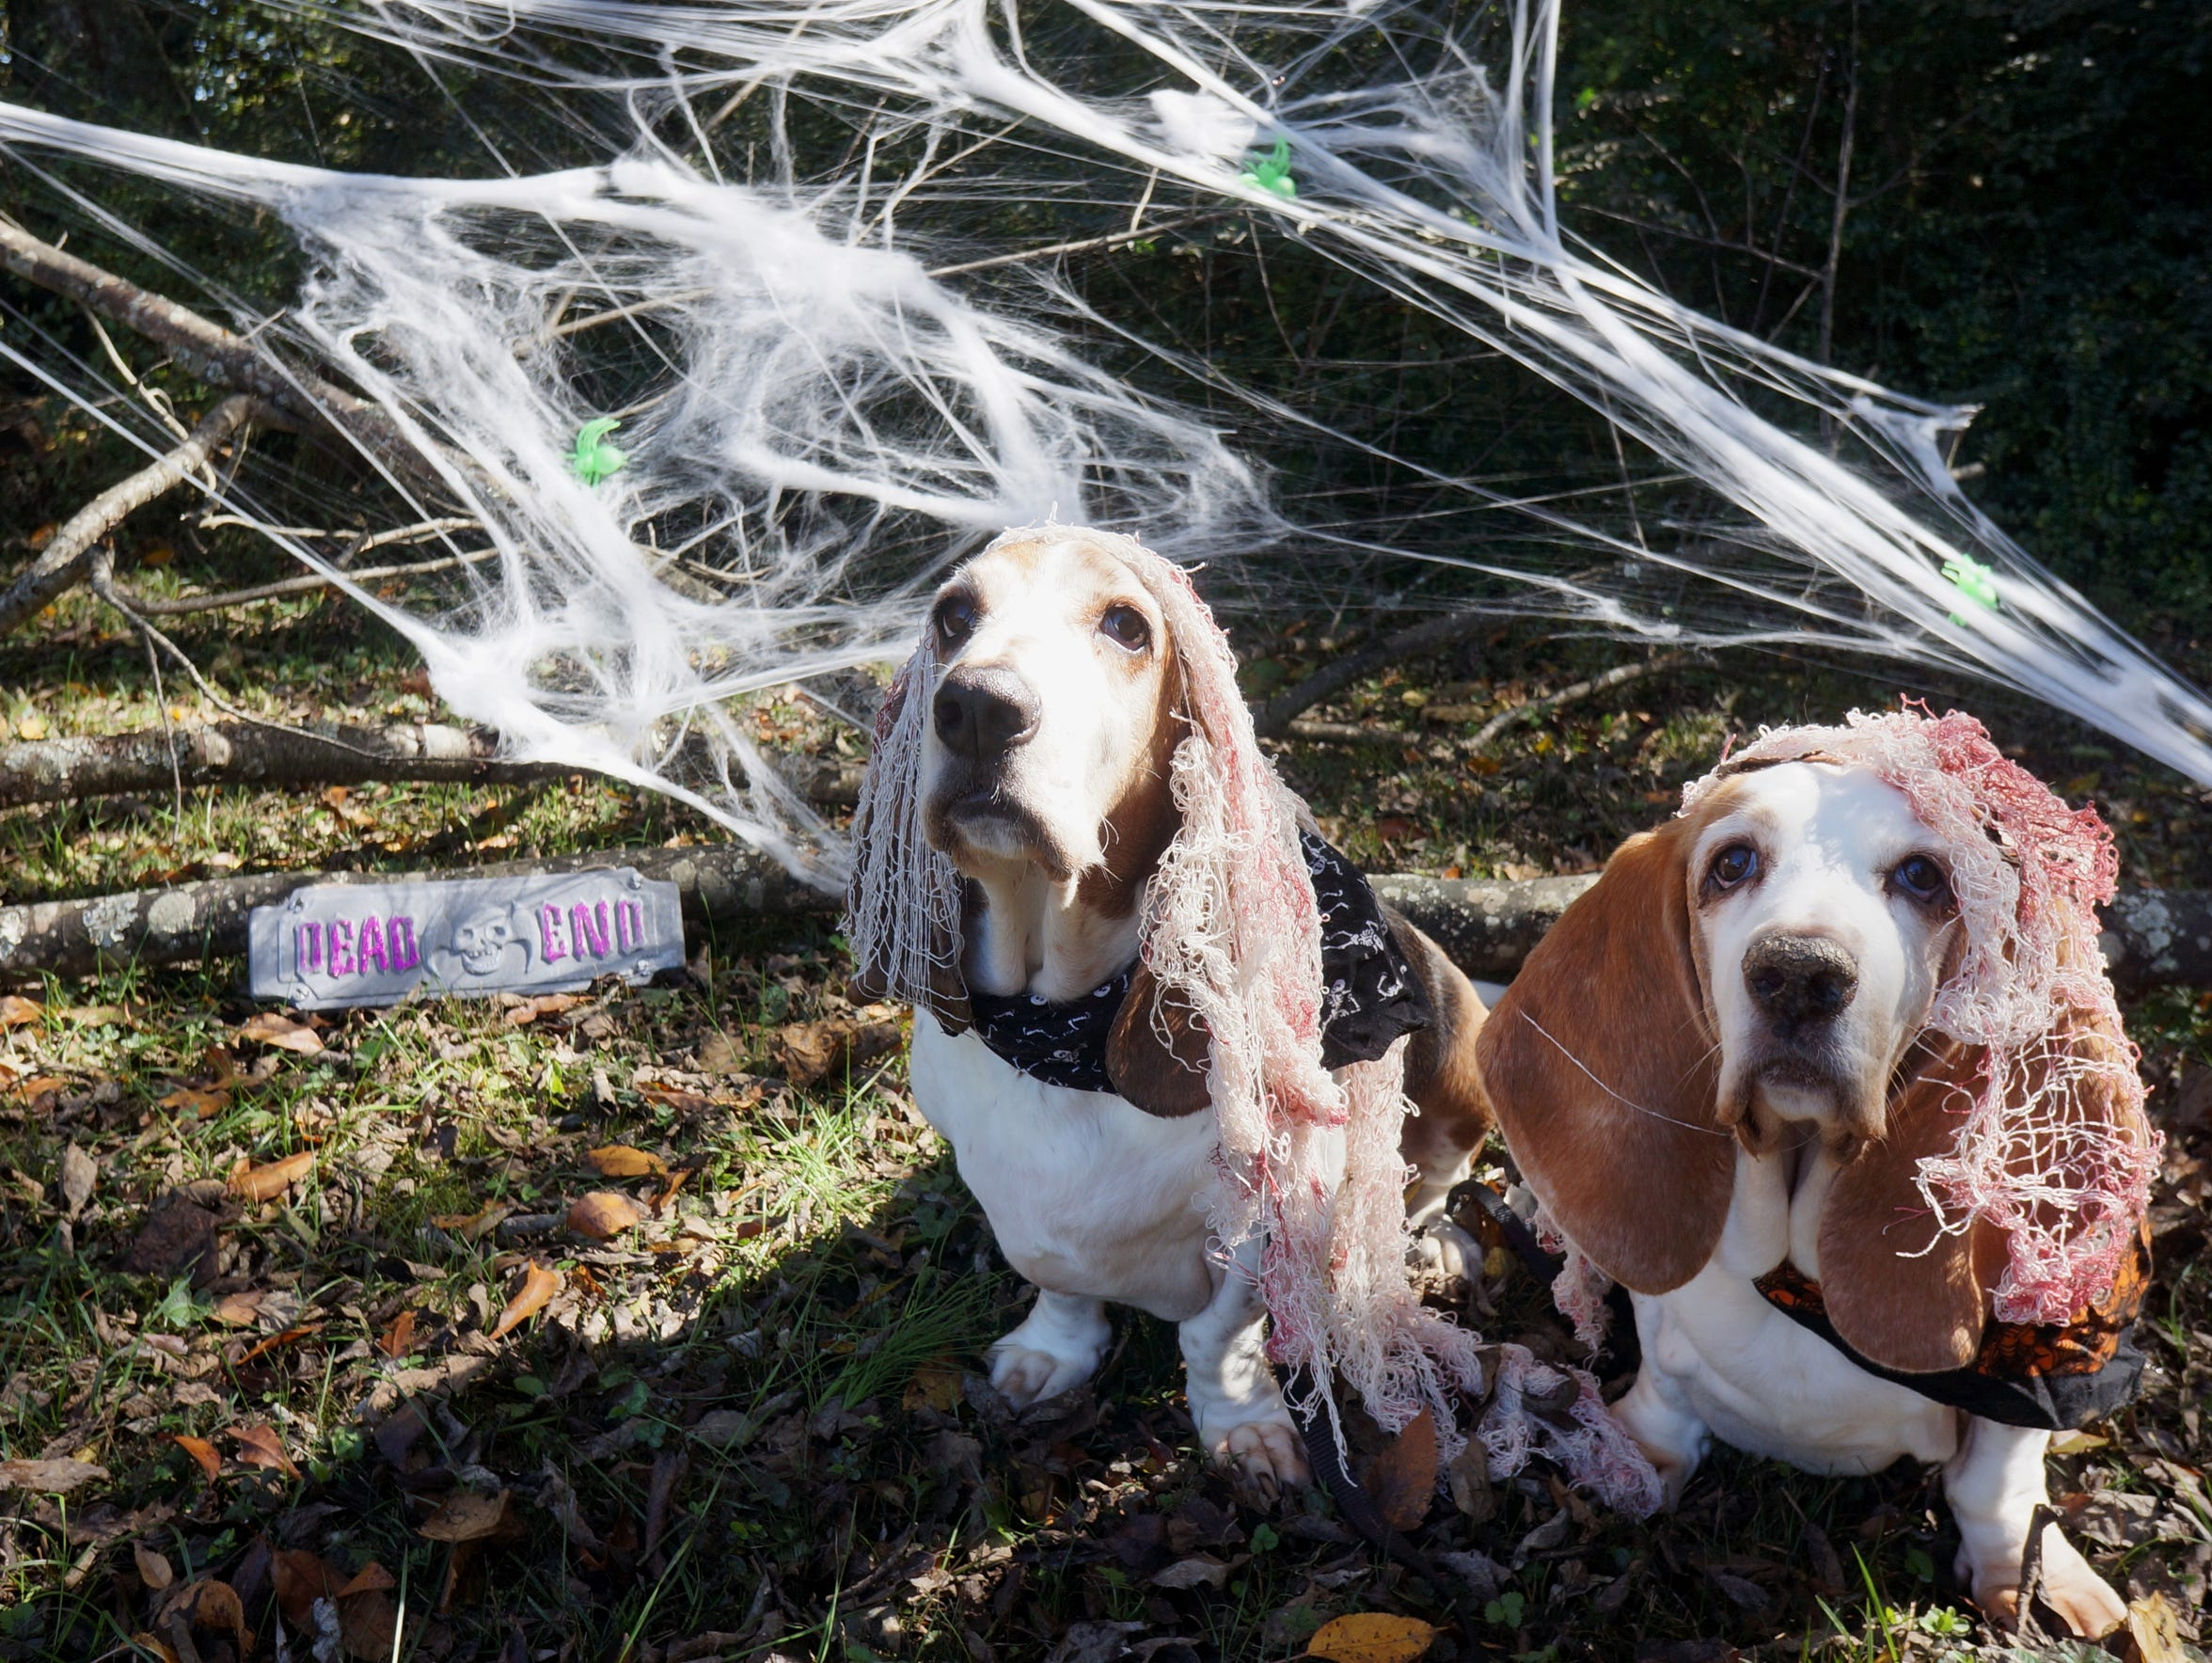 Doll up your dogs and bring them to the annual Youth